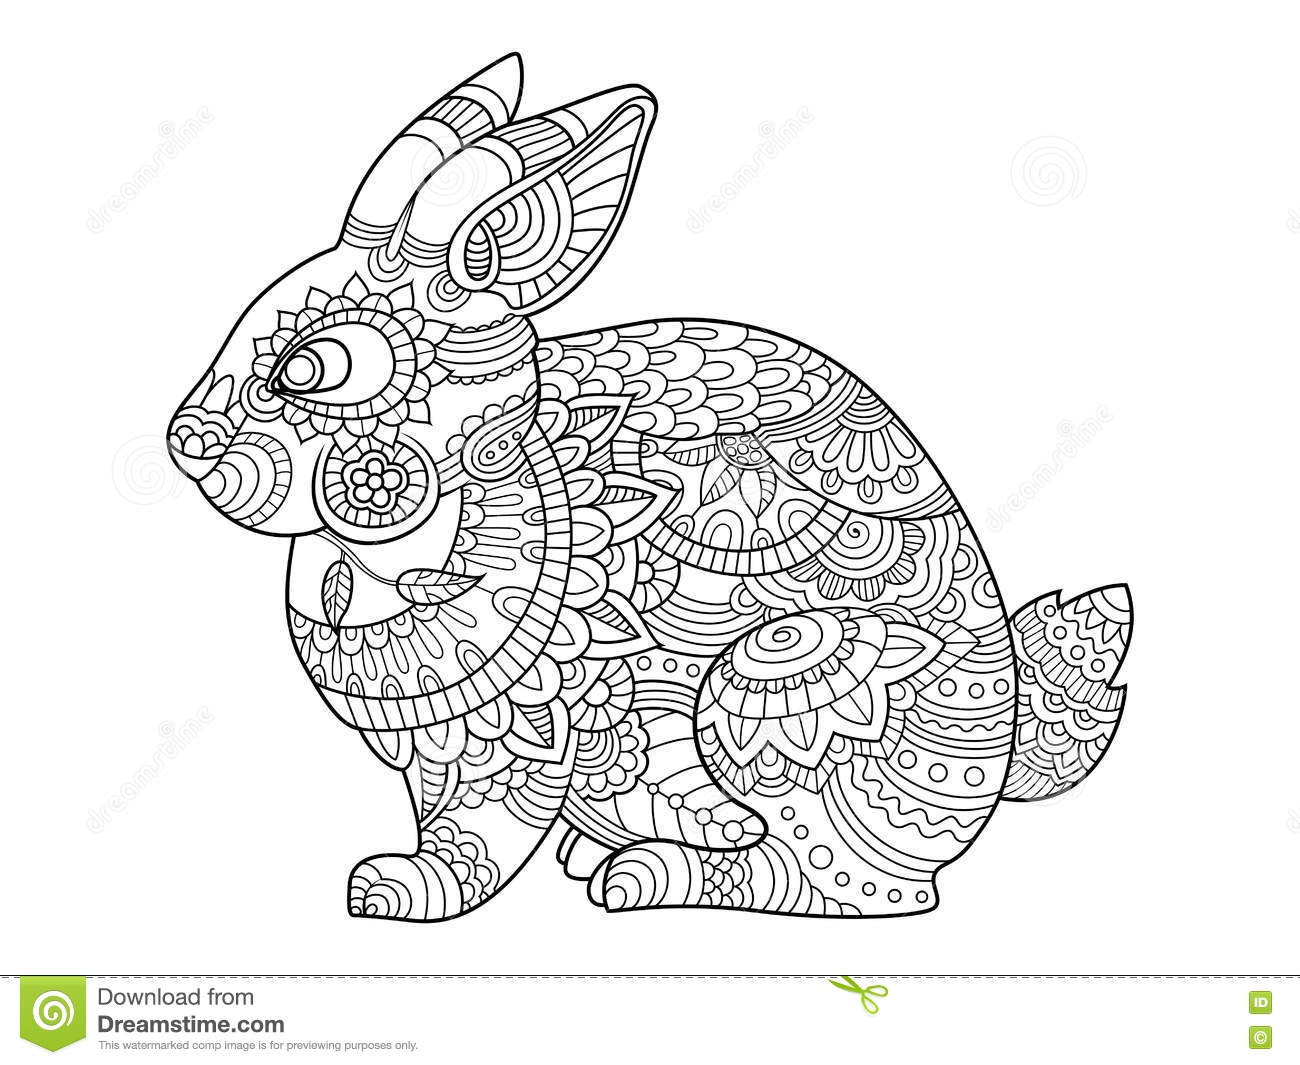 Coloriage Anti Stress Lapin.Coloriage Adulte Lapin